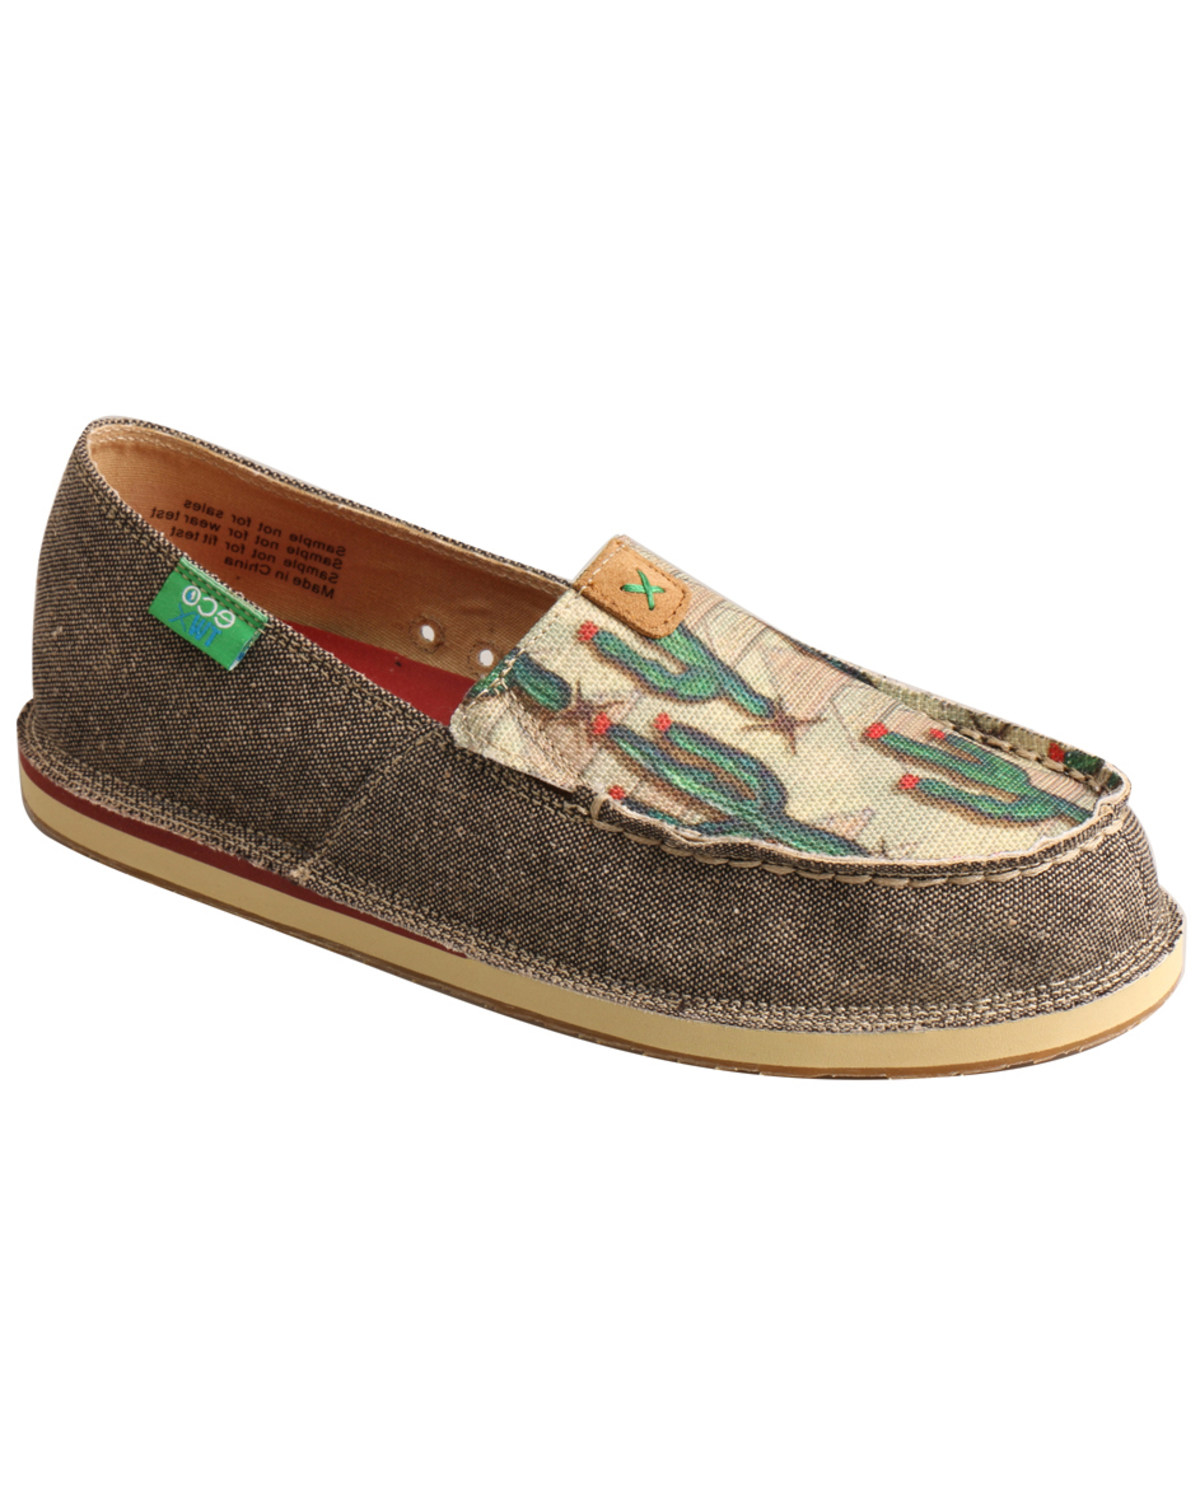 3d0d7b877bce Zoomed Image Twisted X Women's Cactus Driving Loafers - Moc Toe, Multi, ...